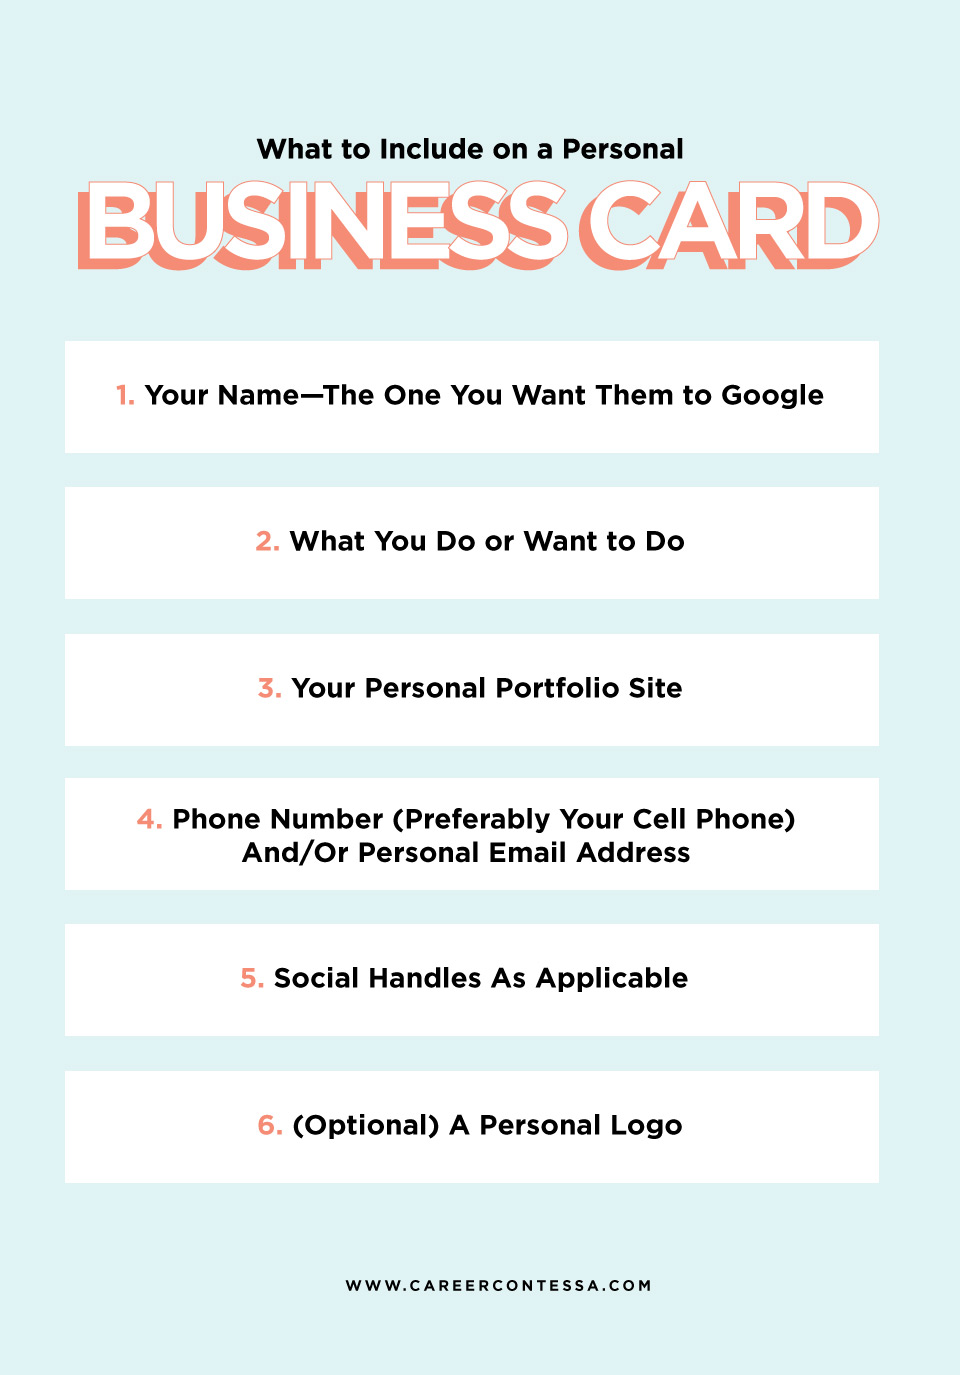 What to Put on a Personal Business Card (+ A Template